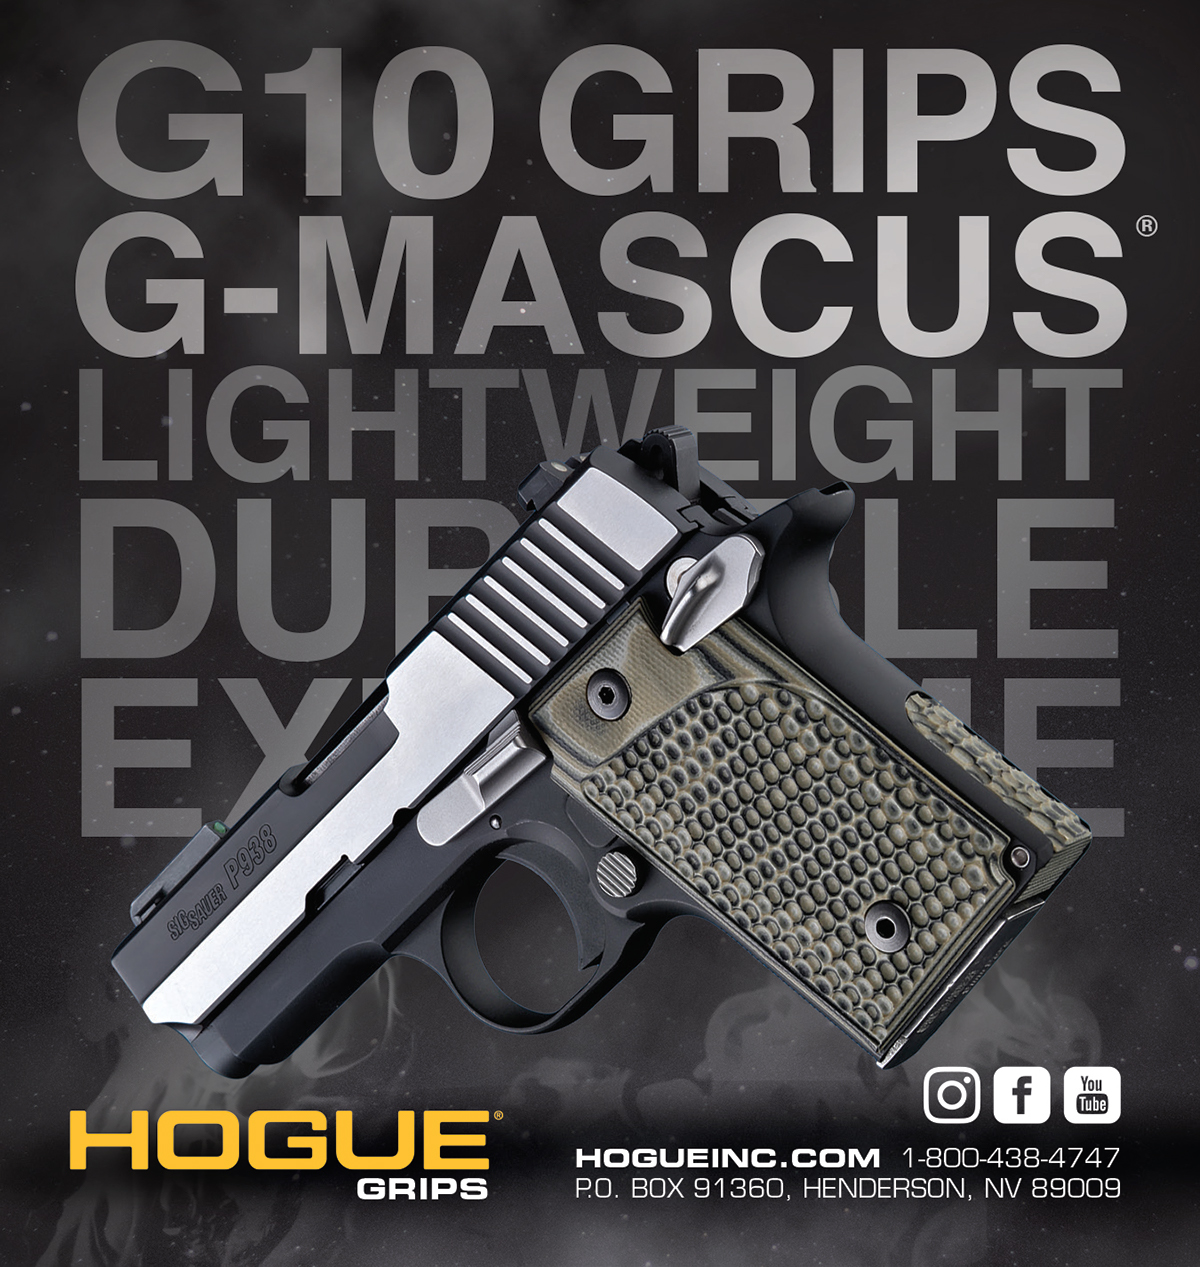 Hogue Inc  Magazine Advertisement Campaign on Behance